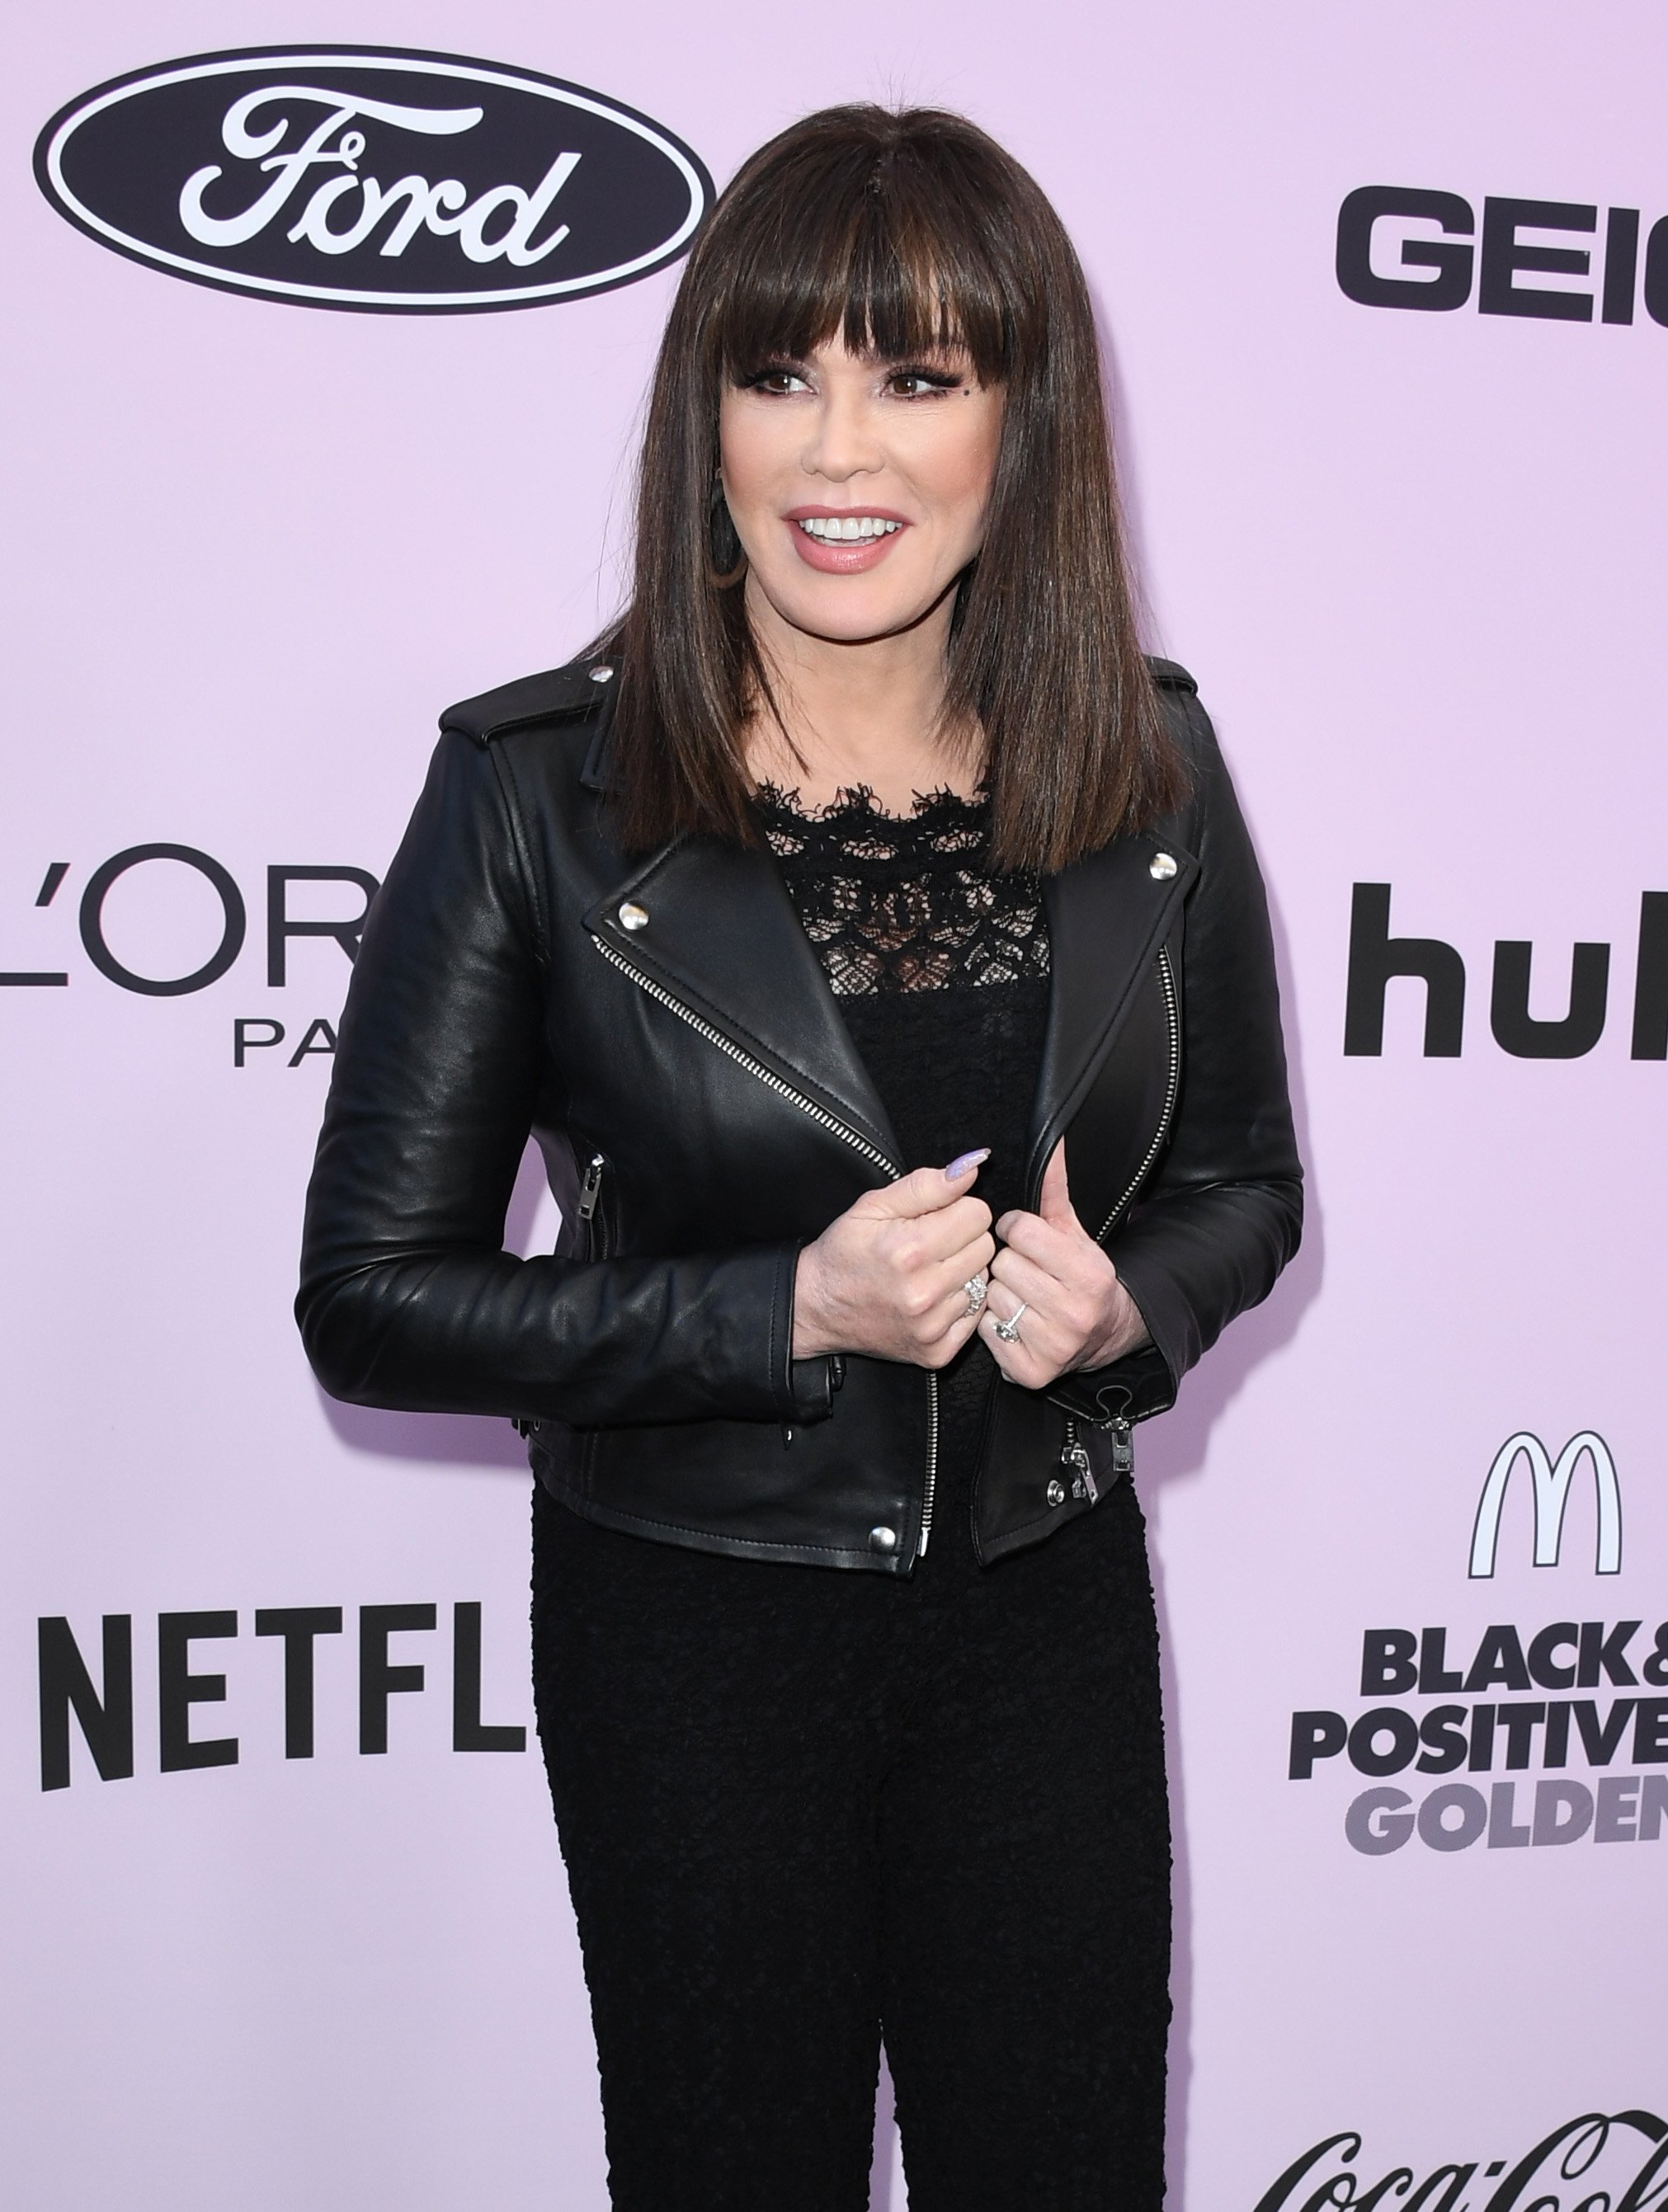 Marie Osmond attends the Essence Black Women In Hollywood Awards Luncheon in Beverly Hills, California on February 6, 2020 | Photo: Getty Images